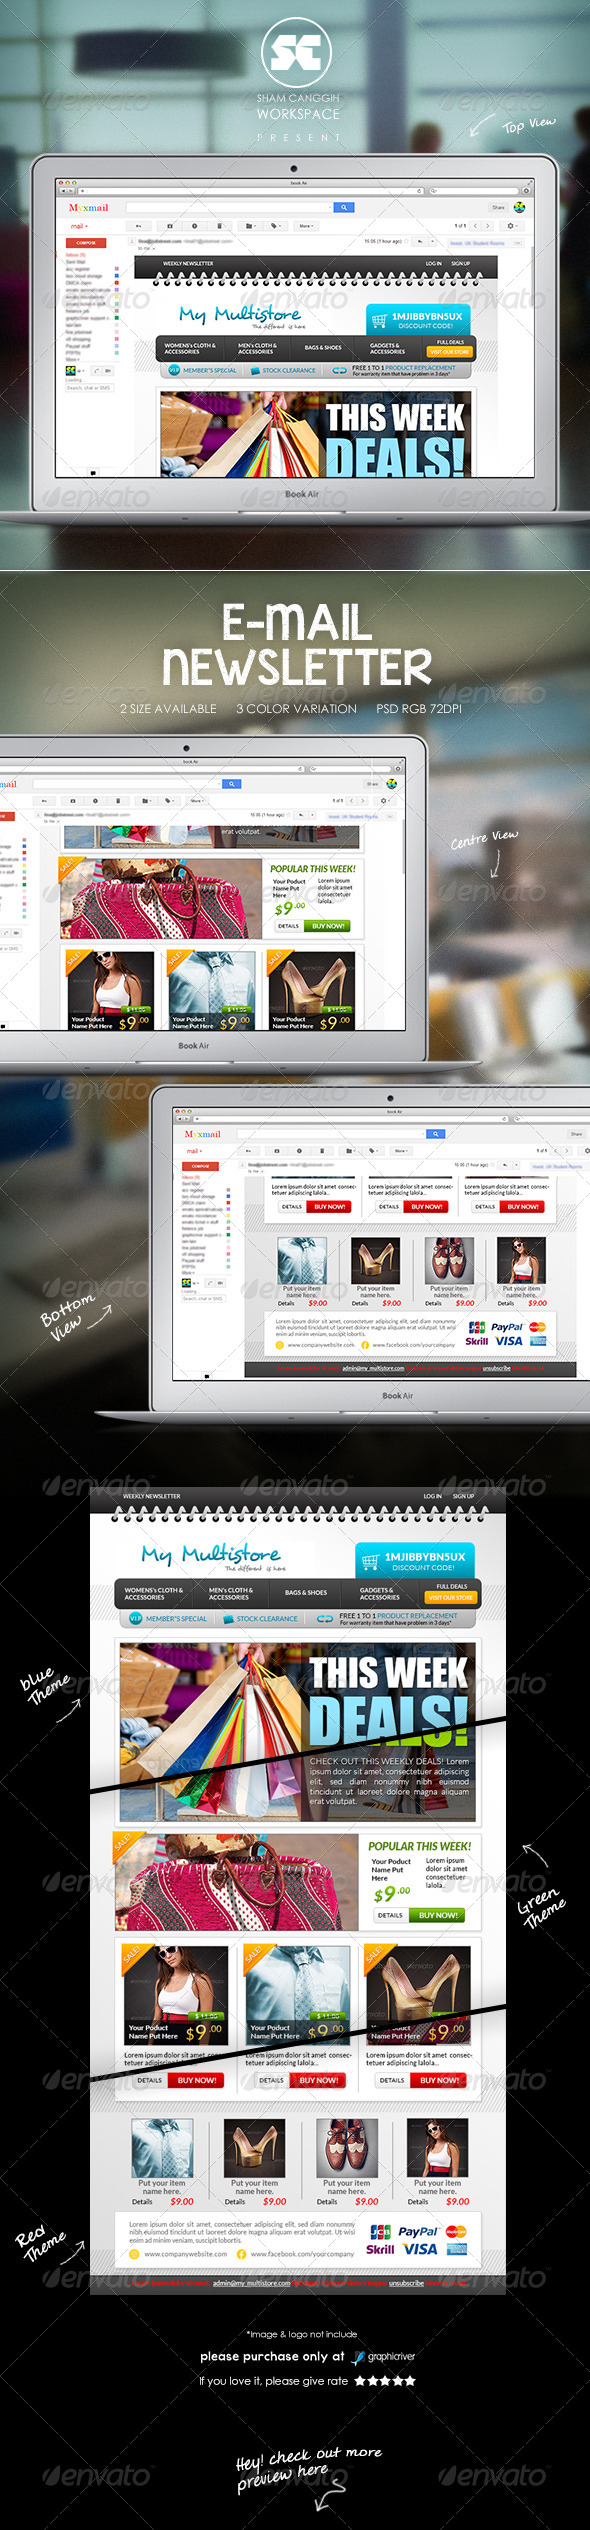 Clean & Modern E-Commerce Email Newsletter - E-newsletters Web Elements